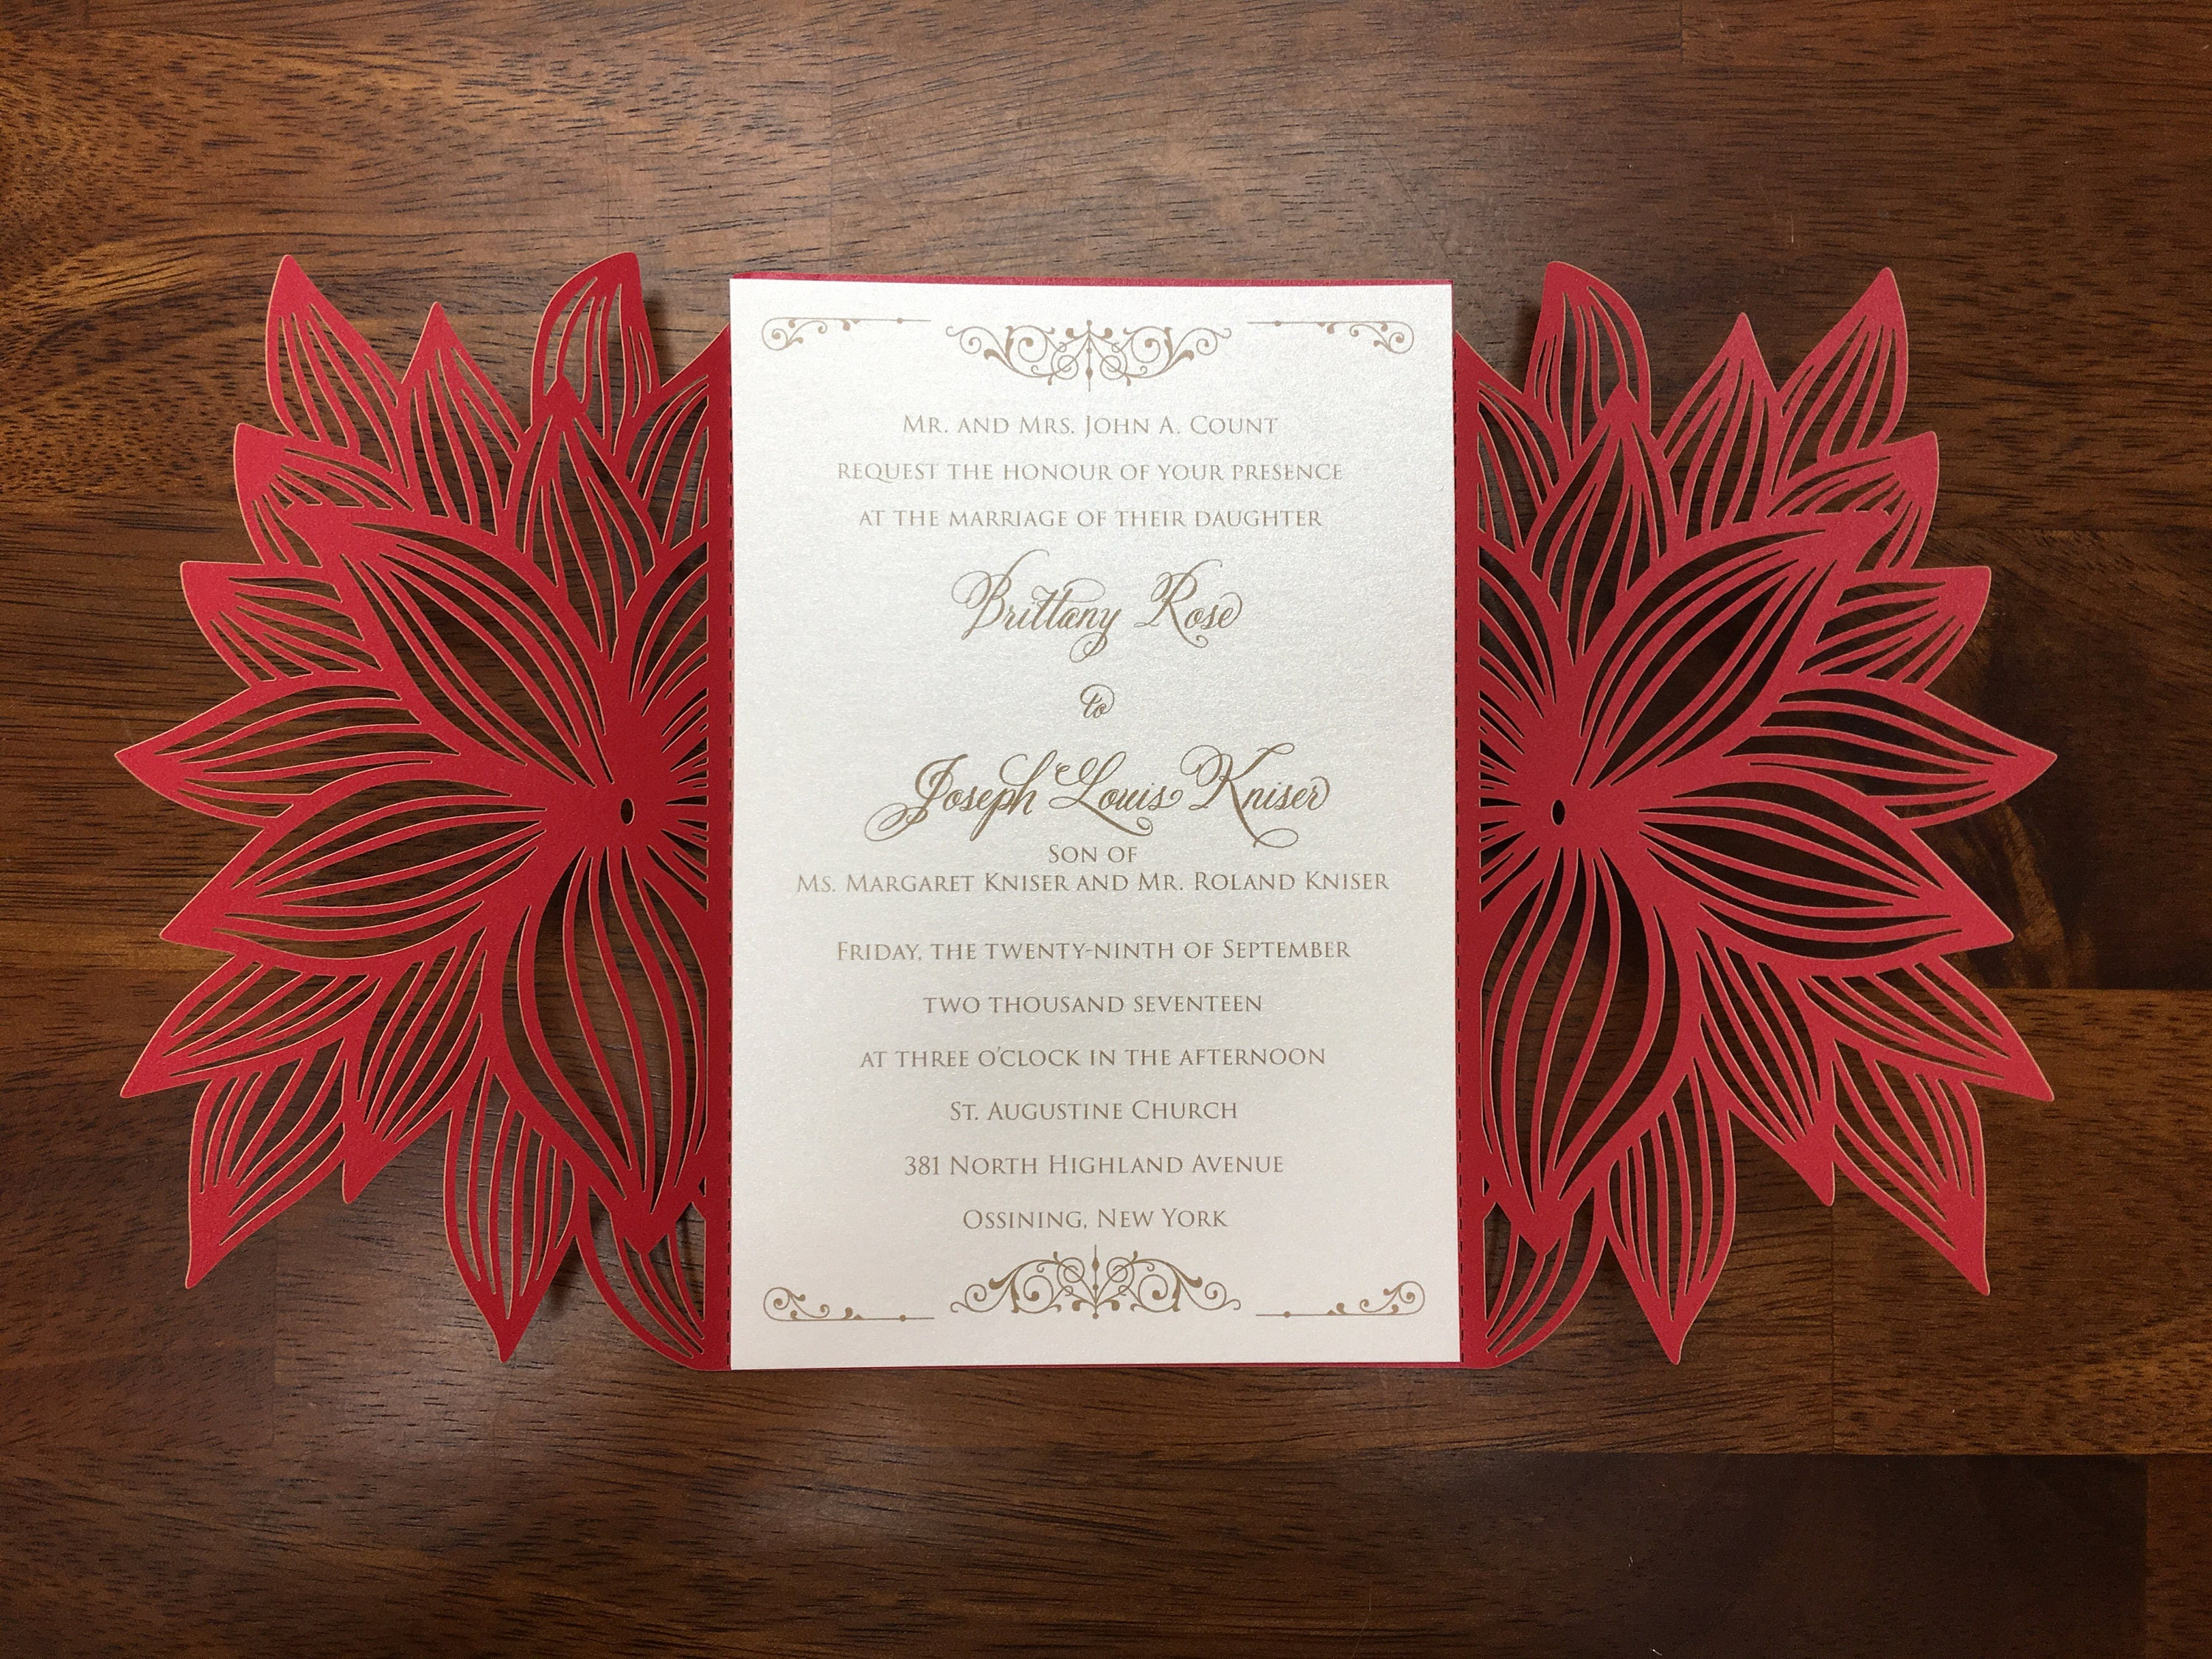 Poinsettia Christmas Laser Cut Wedding Party Invitations | Etsy